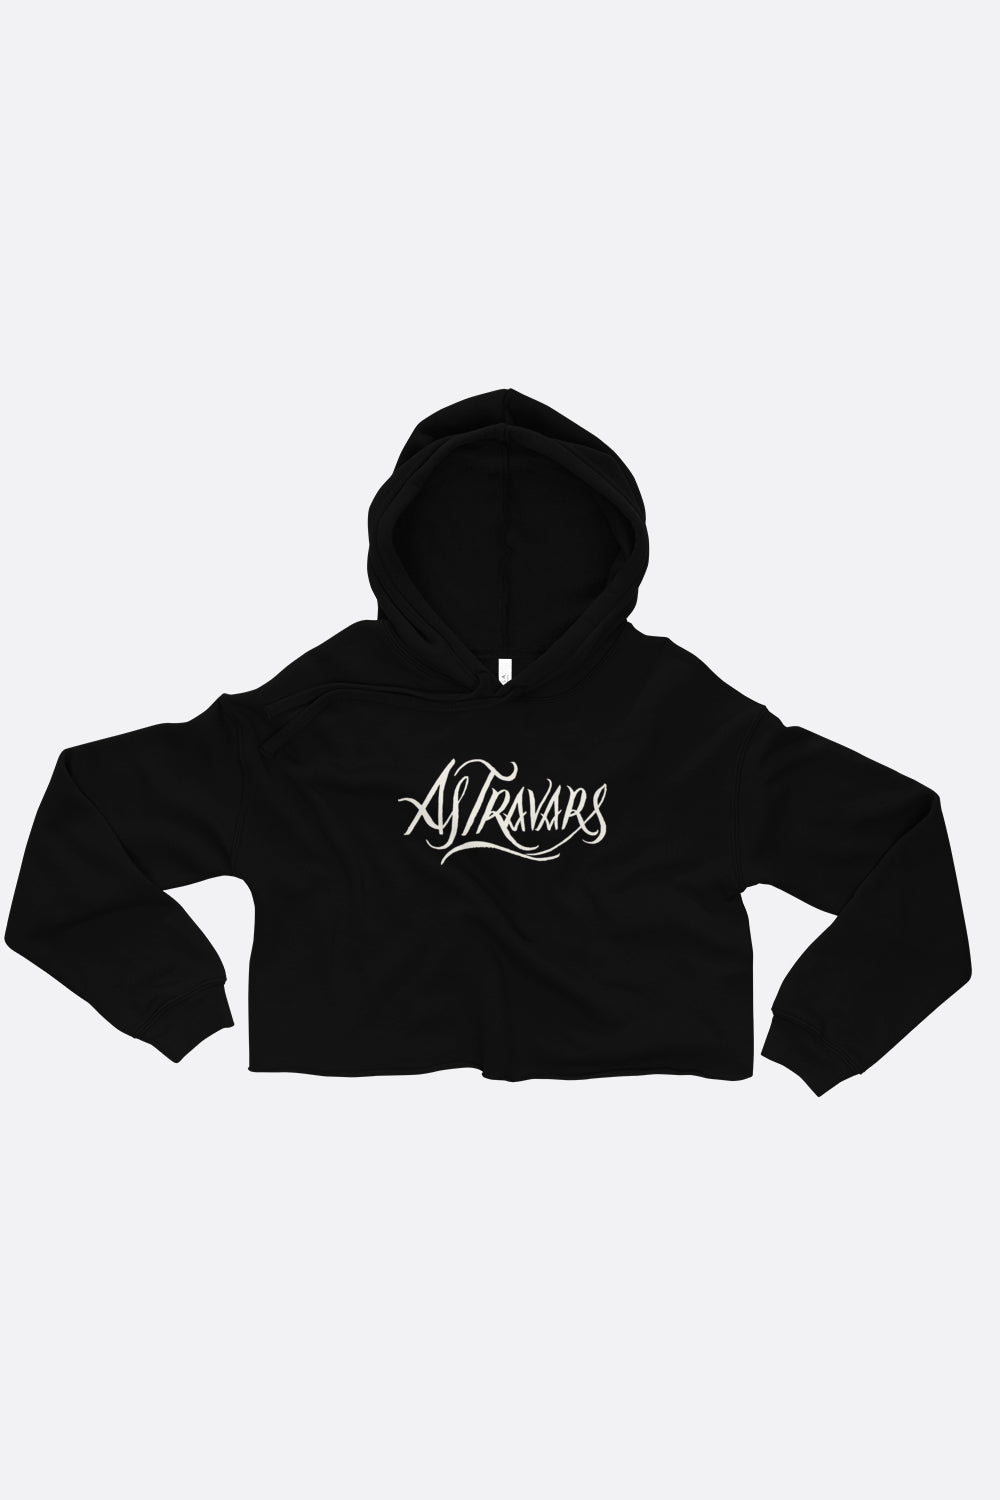 As Travars Crop Hoodie | V. E. Schwab Official